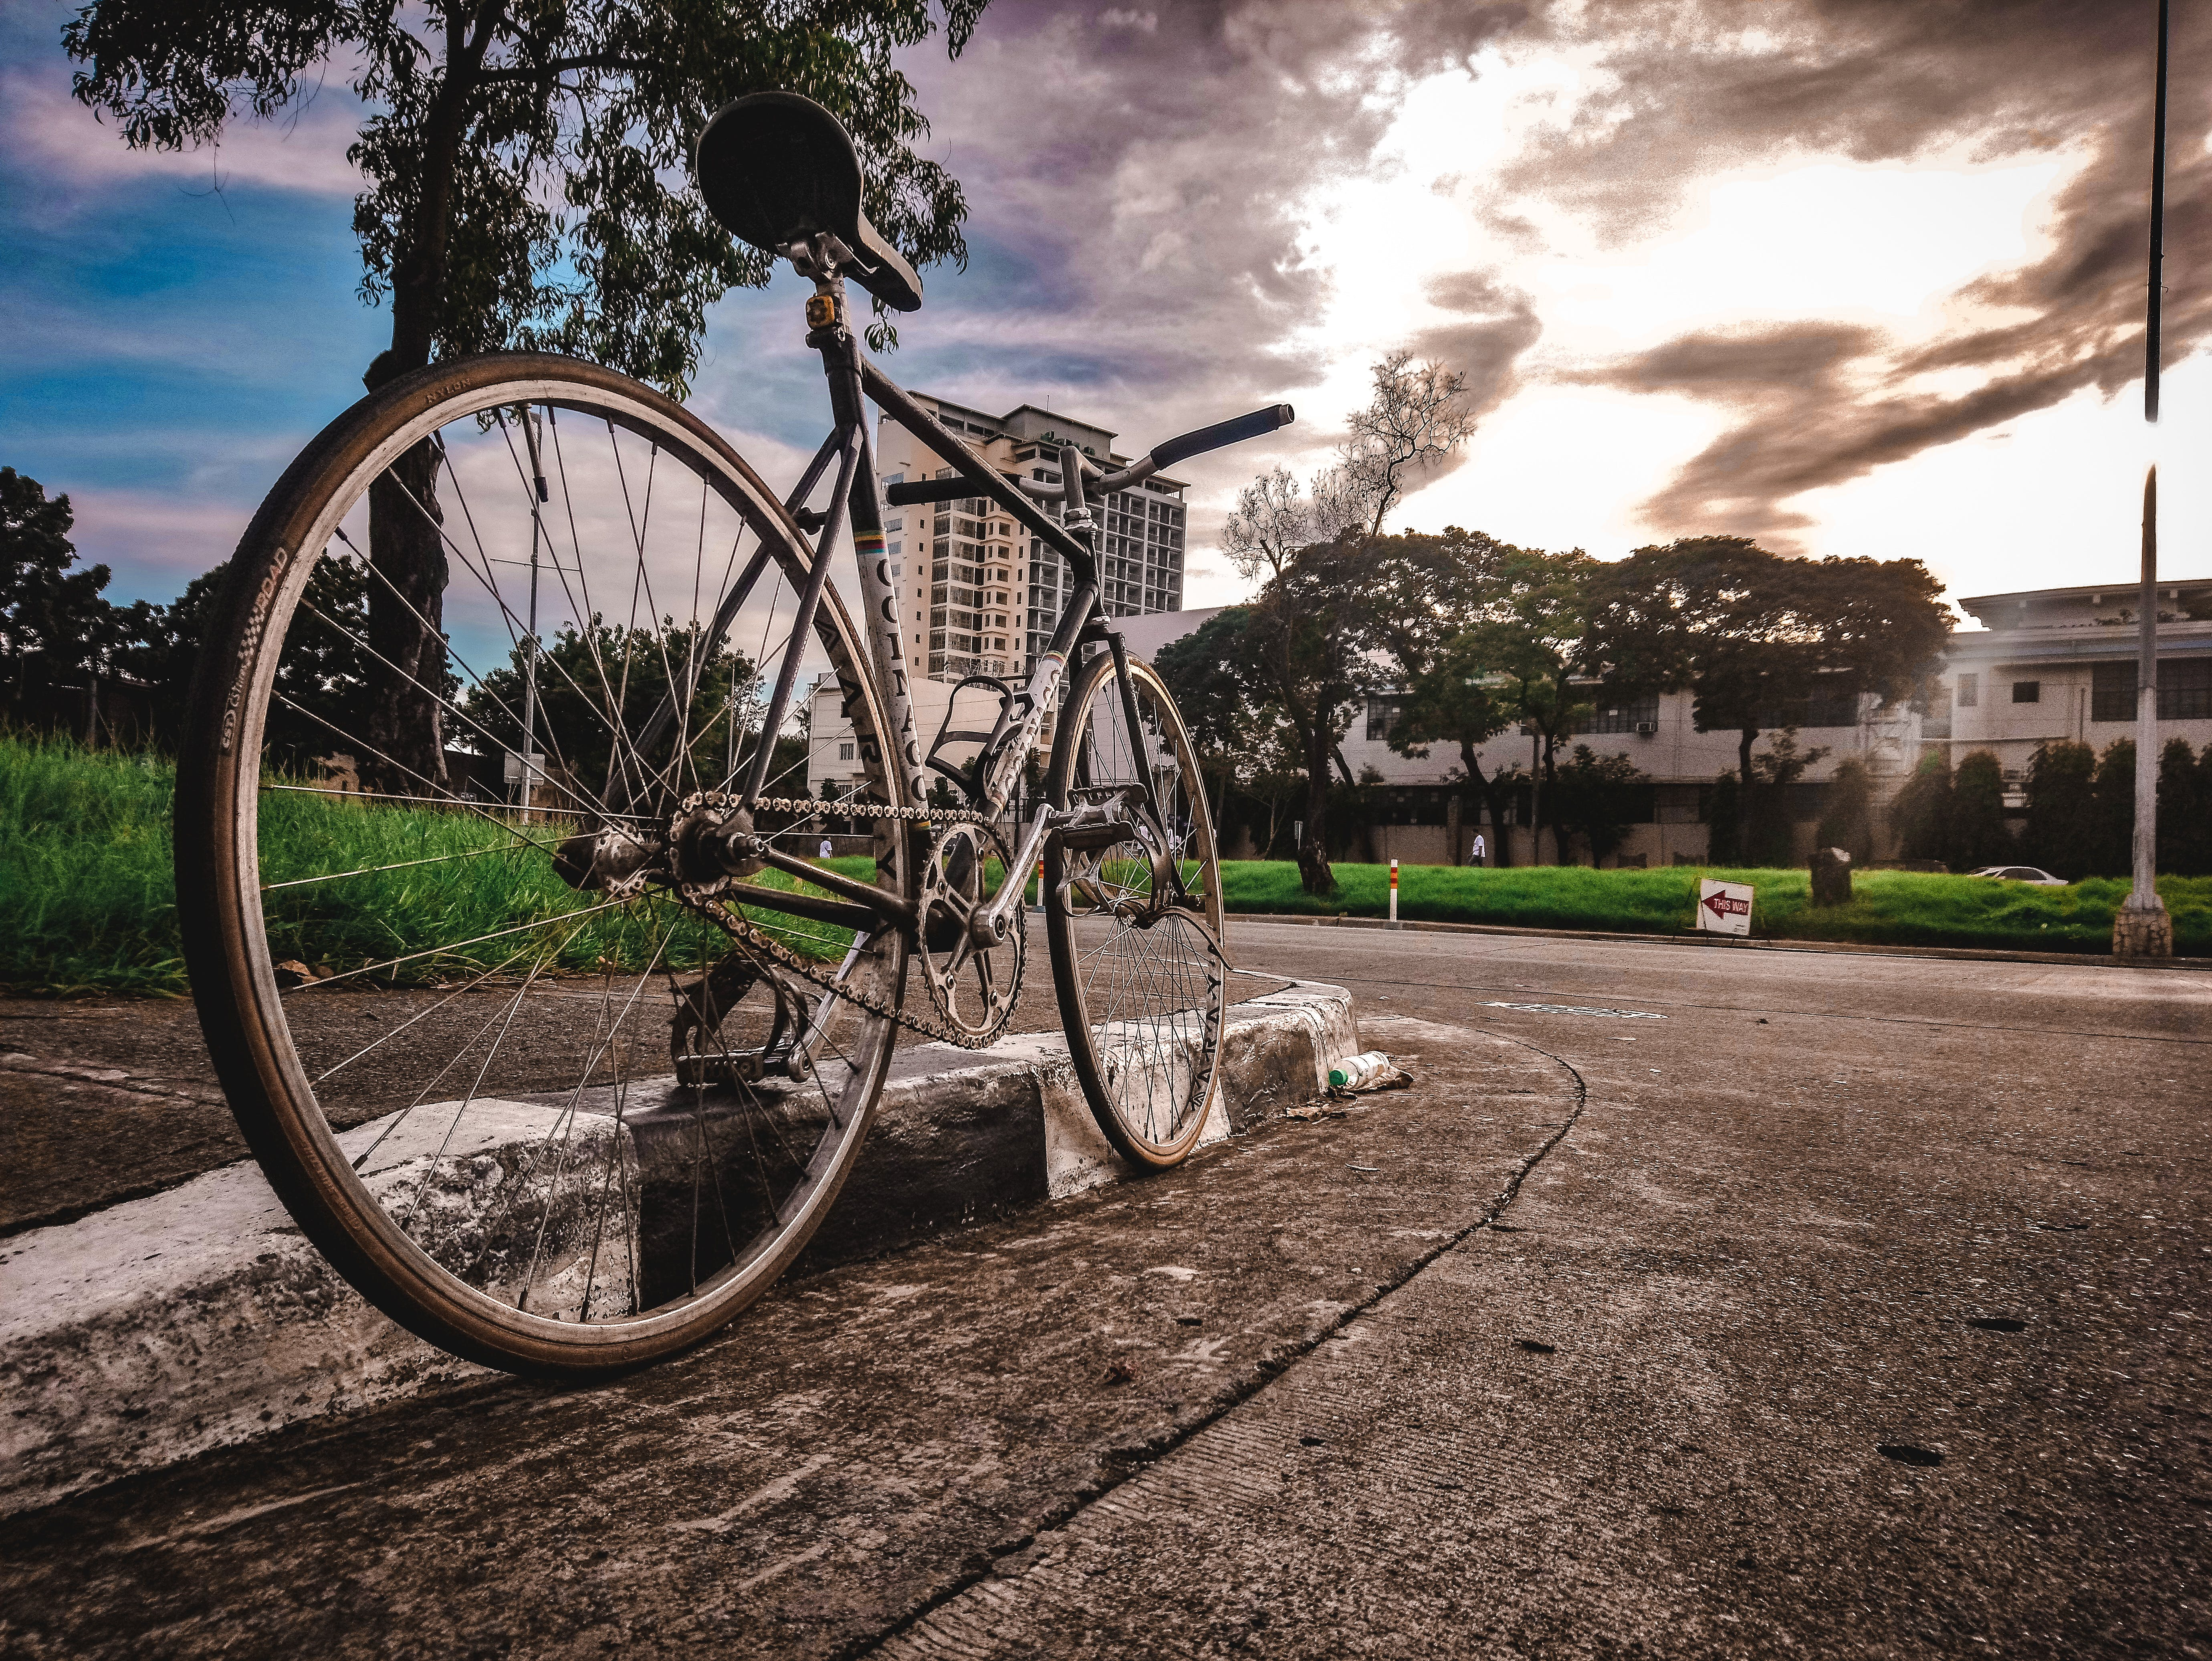 chilling, fixed gear, rides